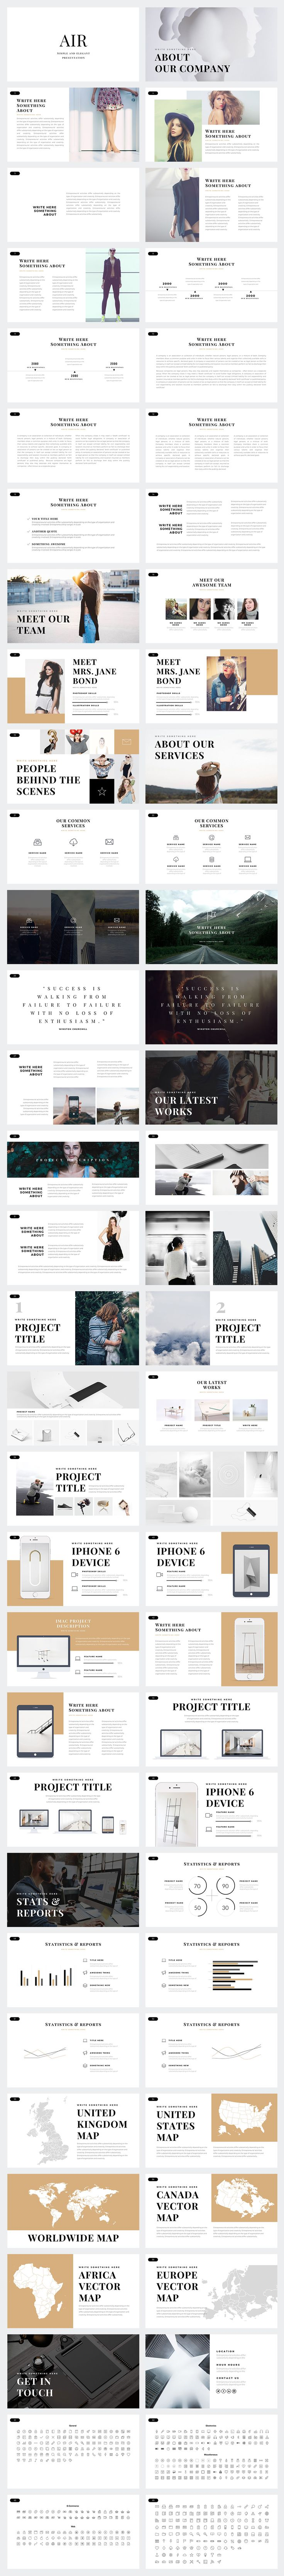 Air Minimal PowerPoint Template by Slidedizer on @creativemarket